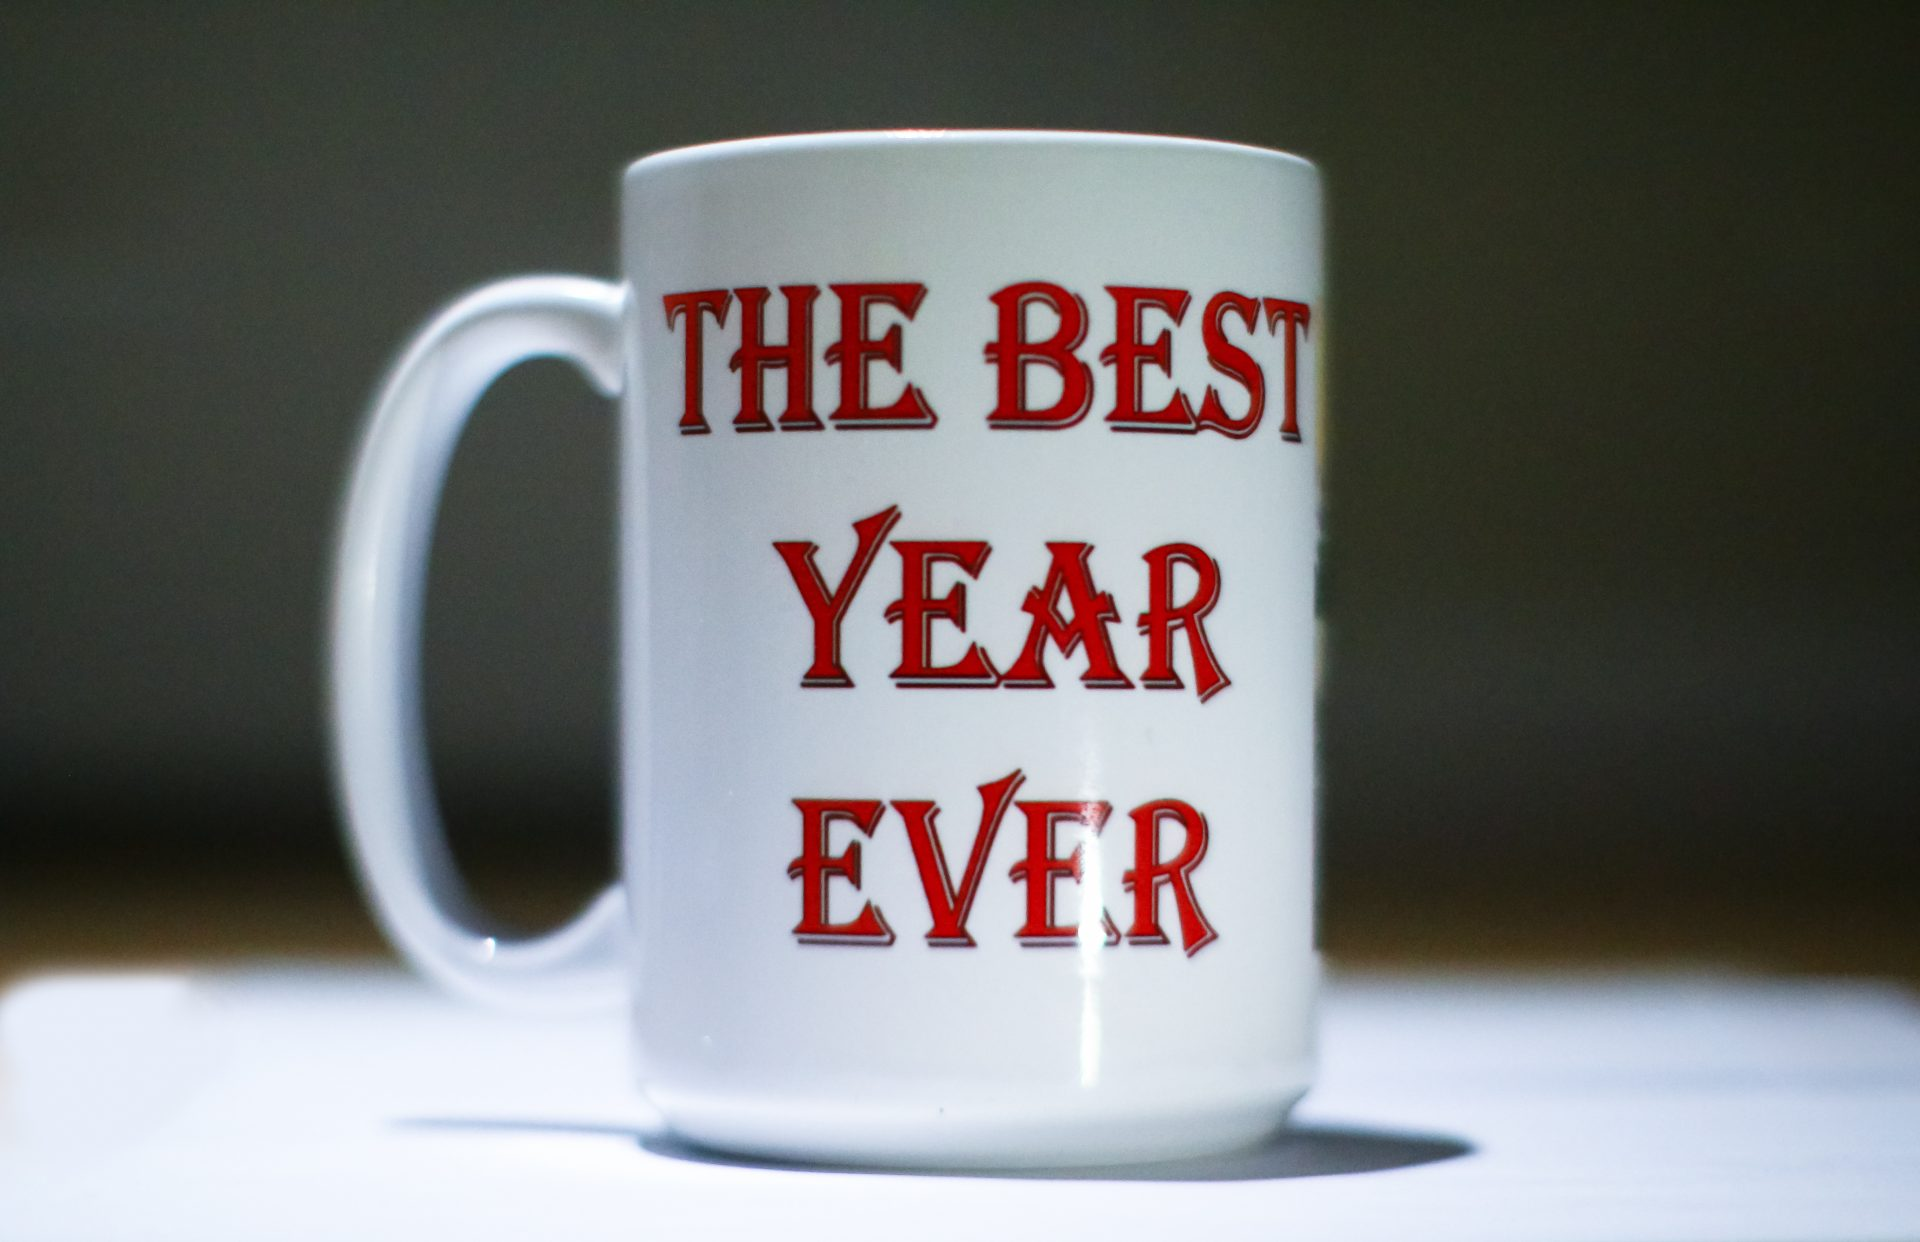 A Mug Predicted My Future